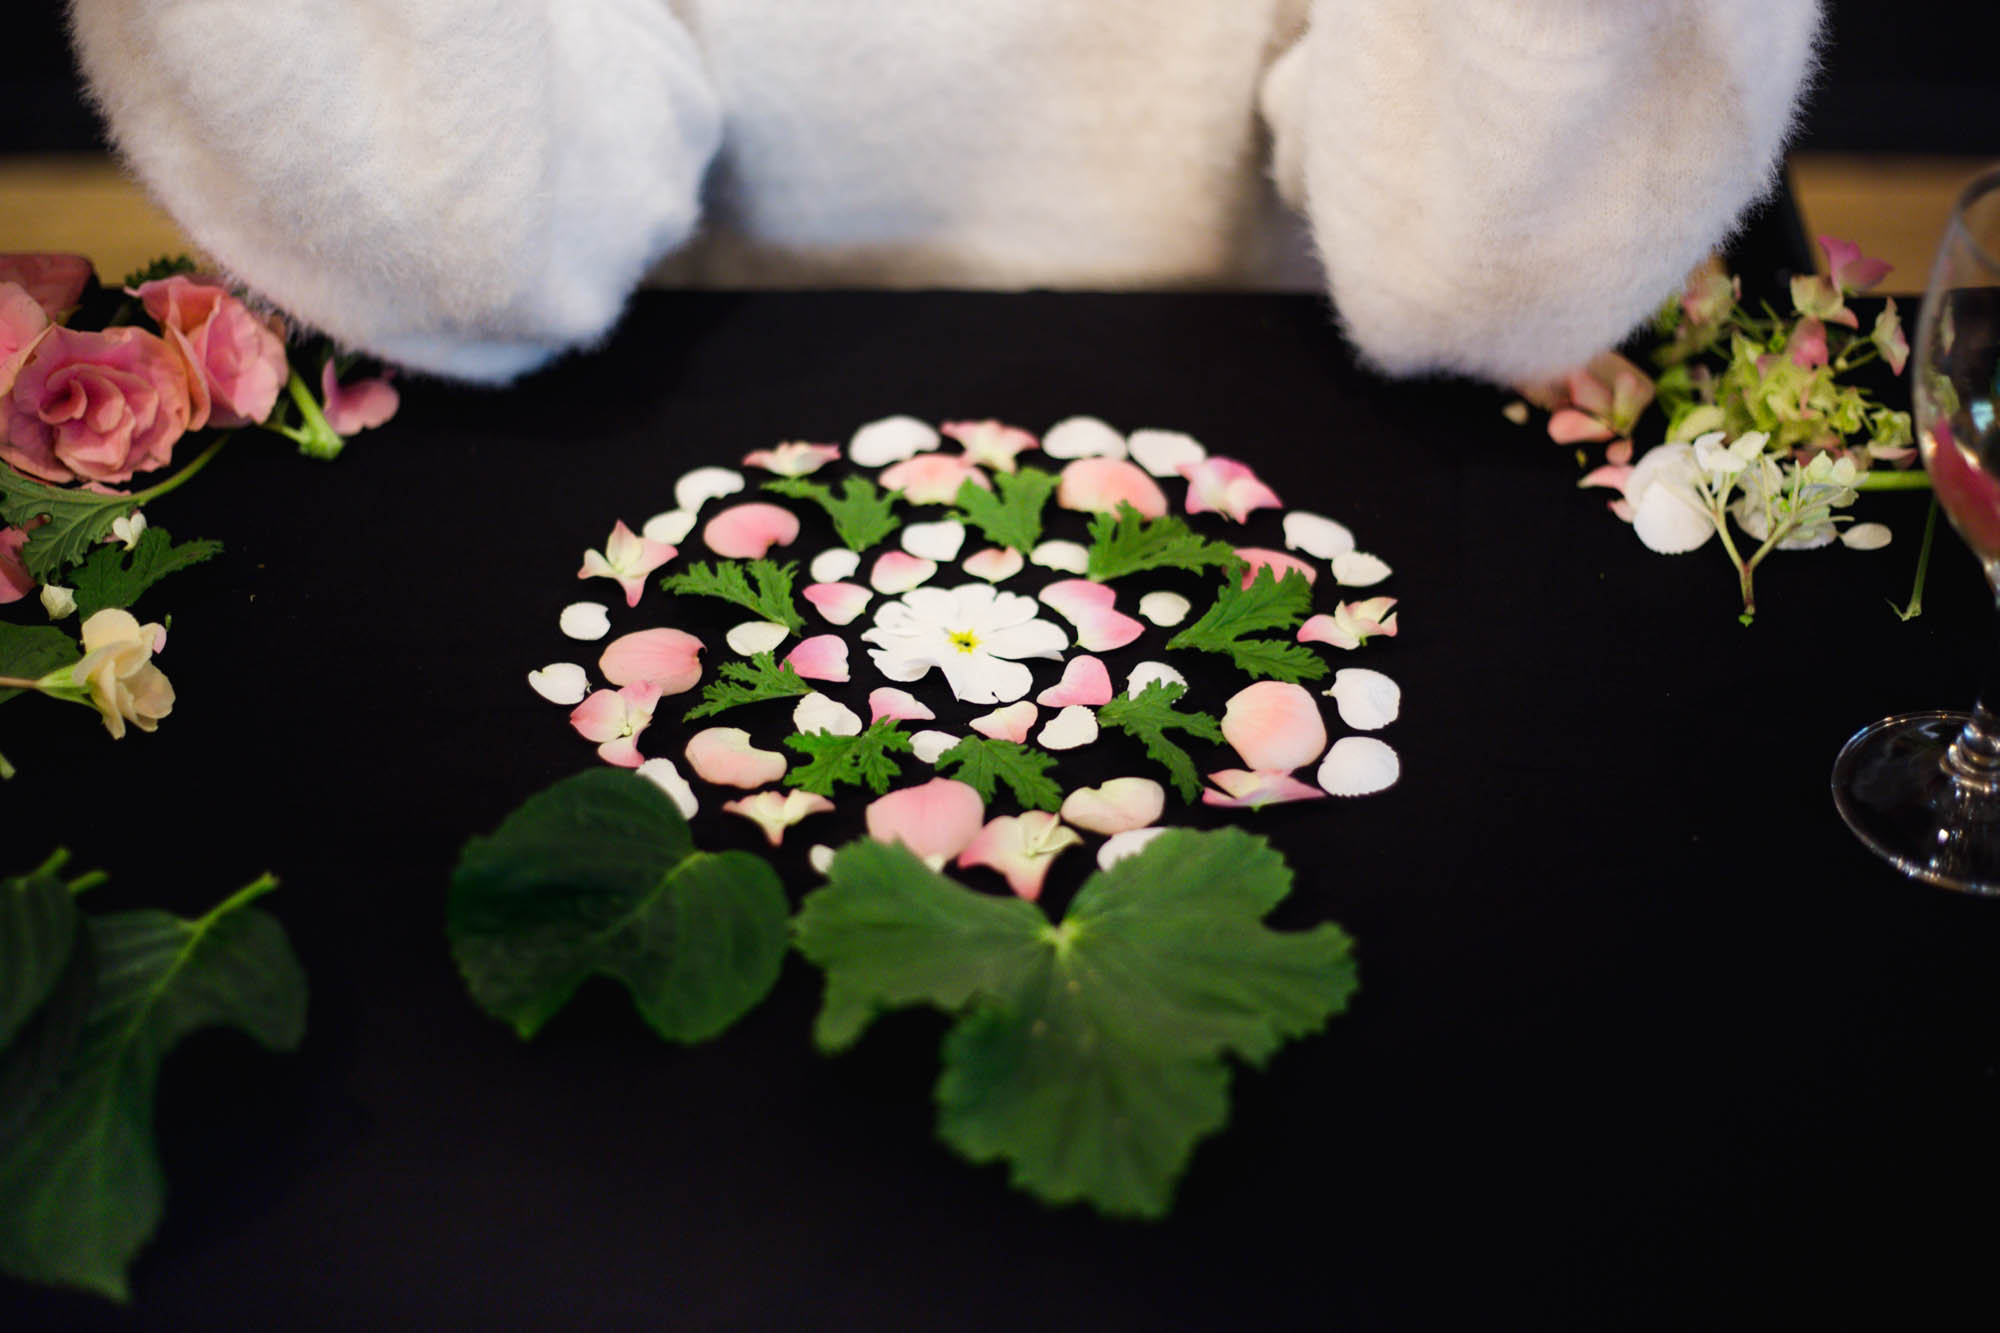 Workshop - Blomsterpill med Hanna Wendelbo